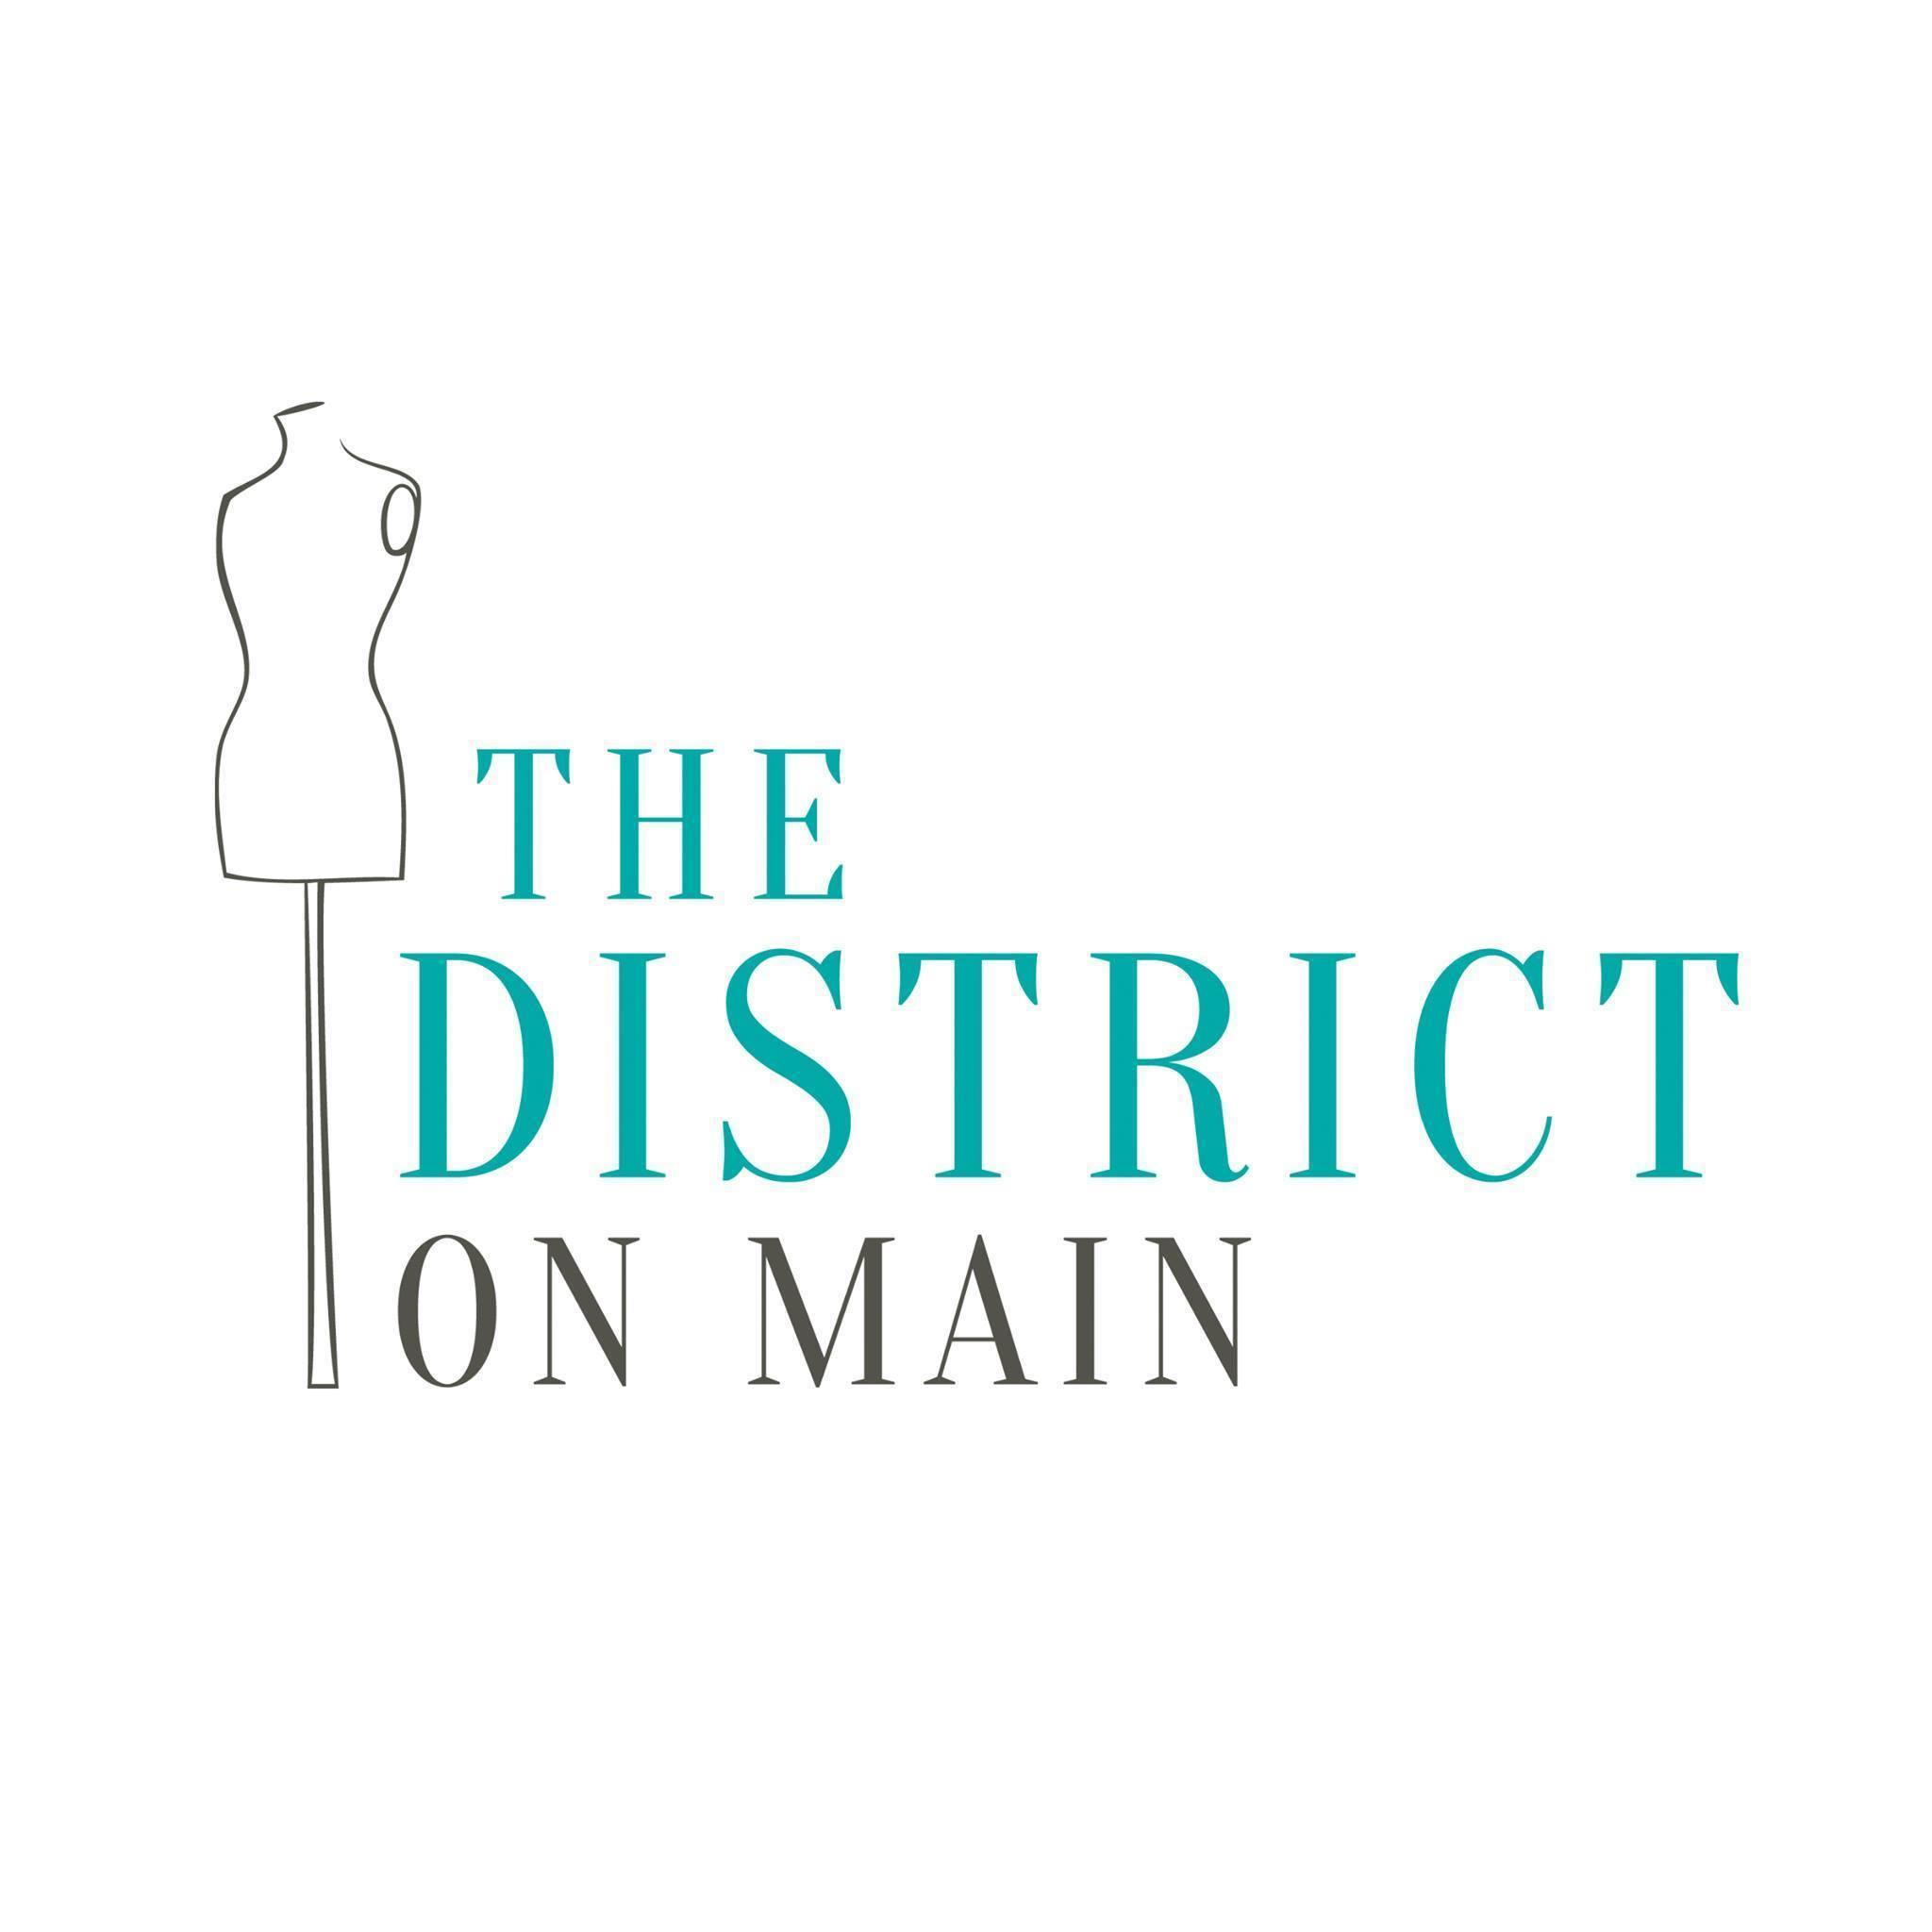 The District On Main